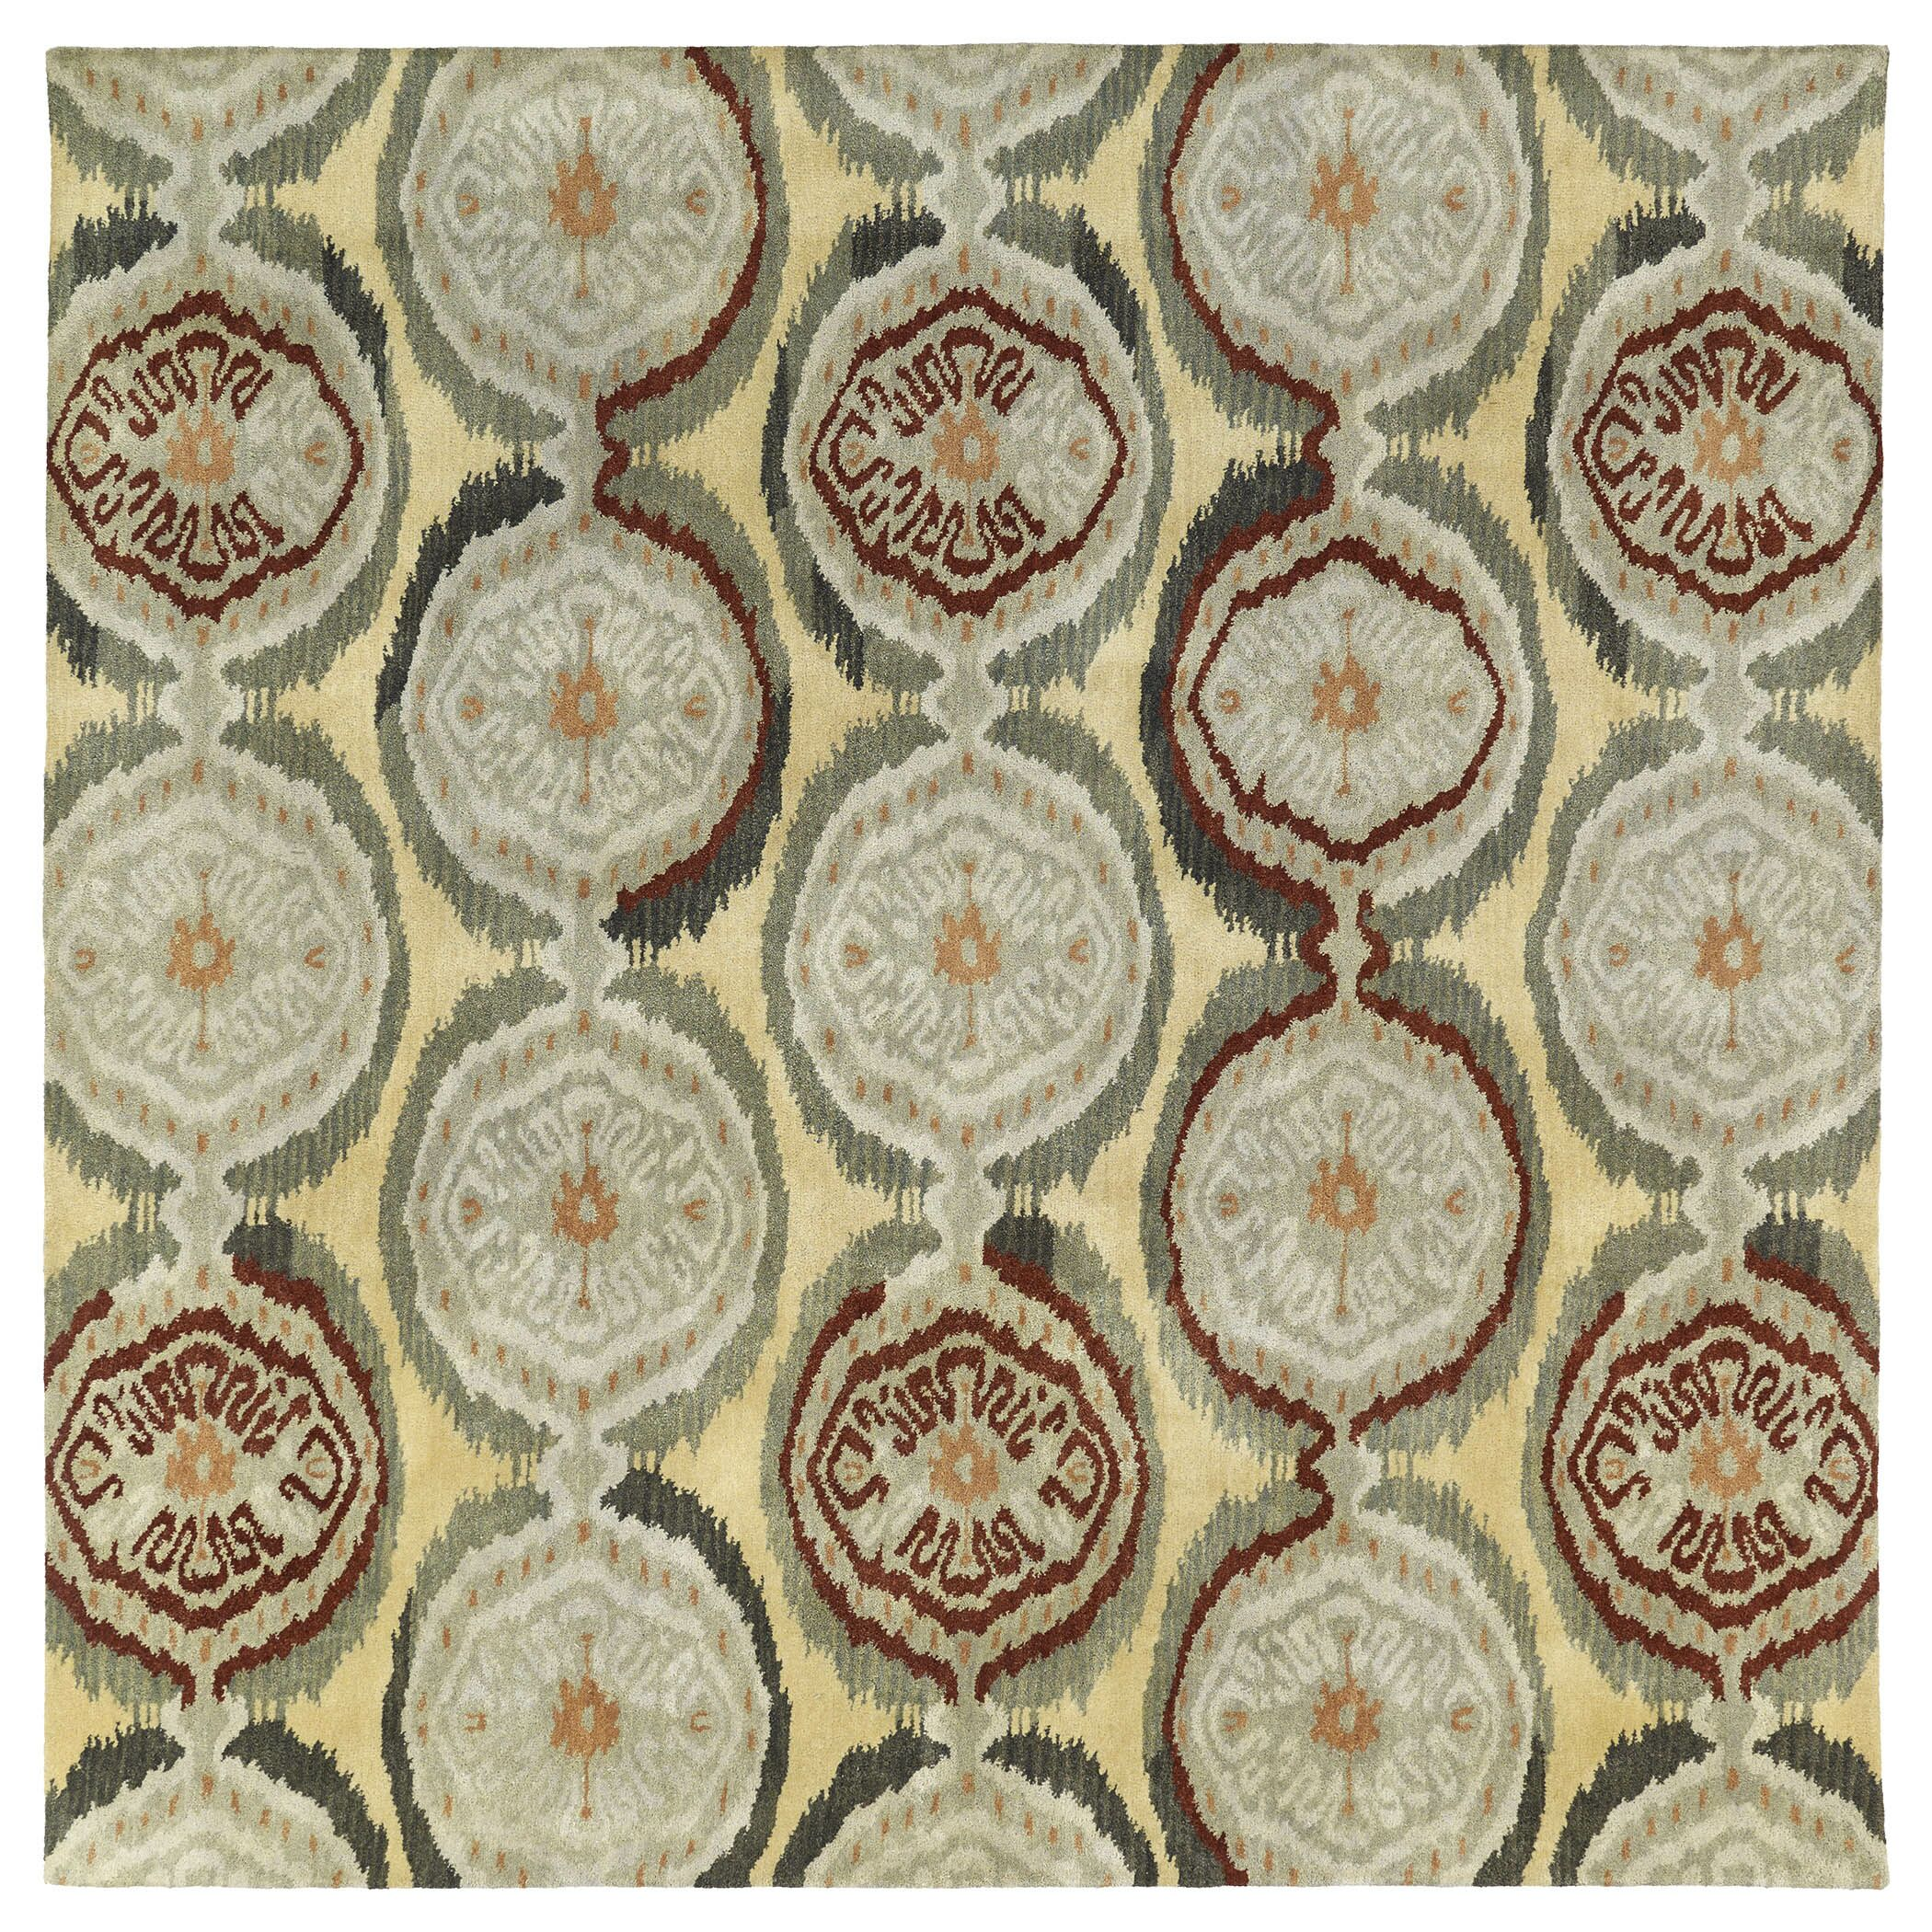 Lockport Beige Area Rug Rug Size: Rectangle 7'6